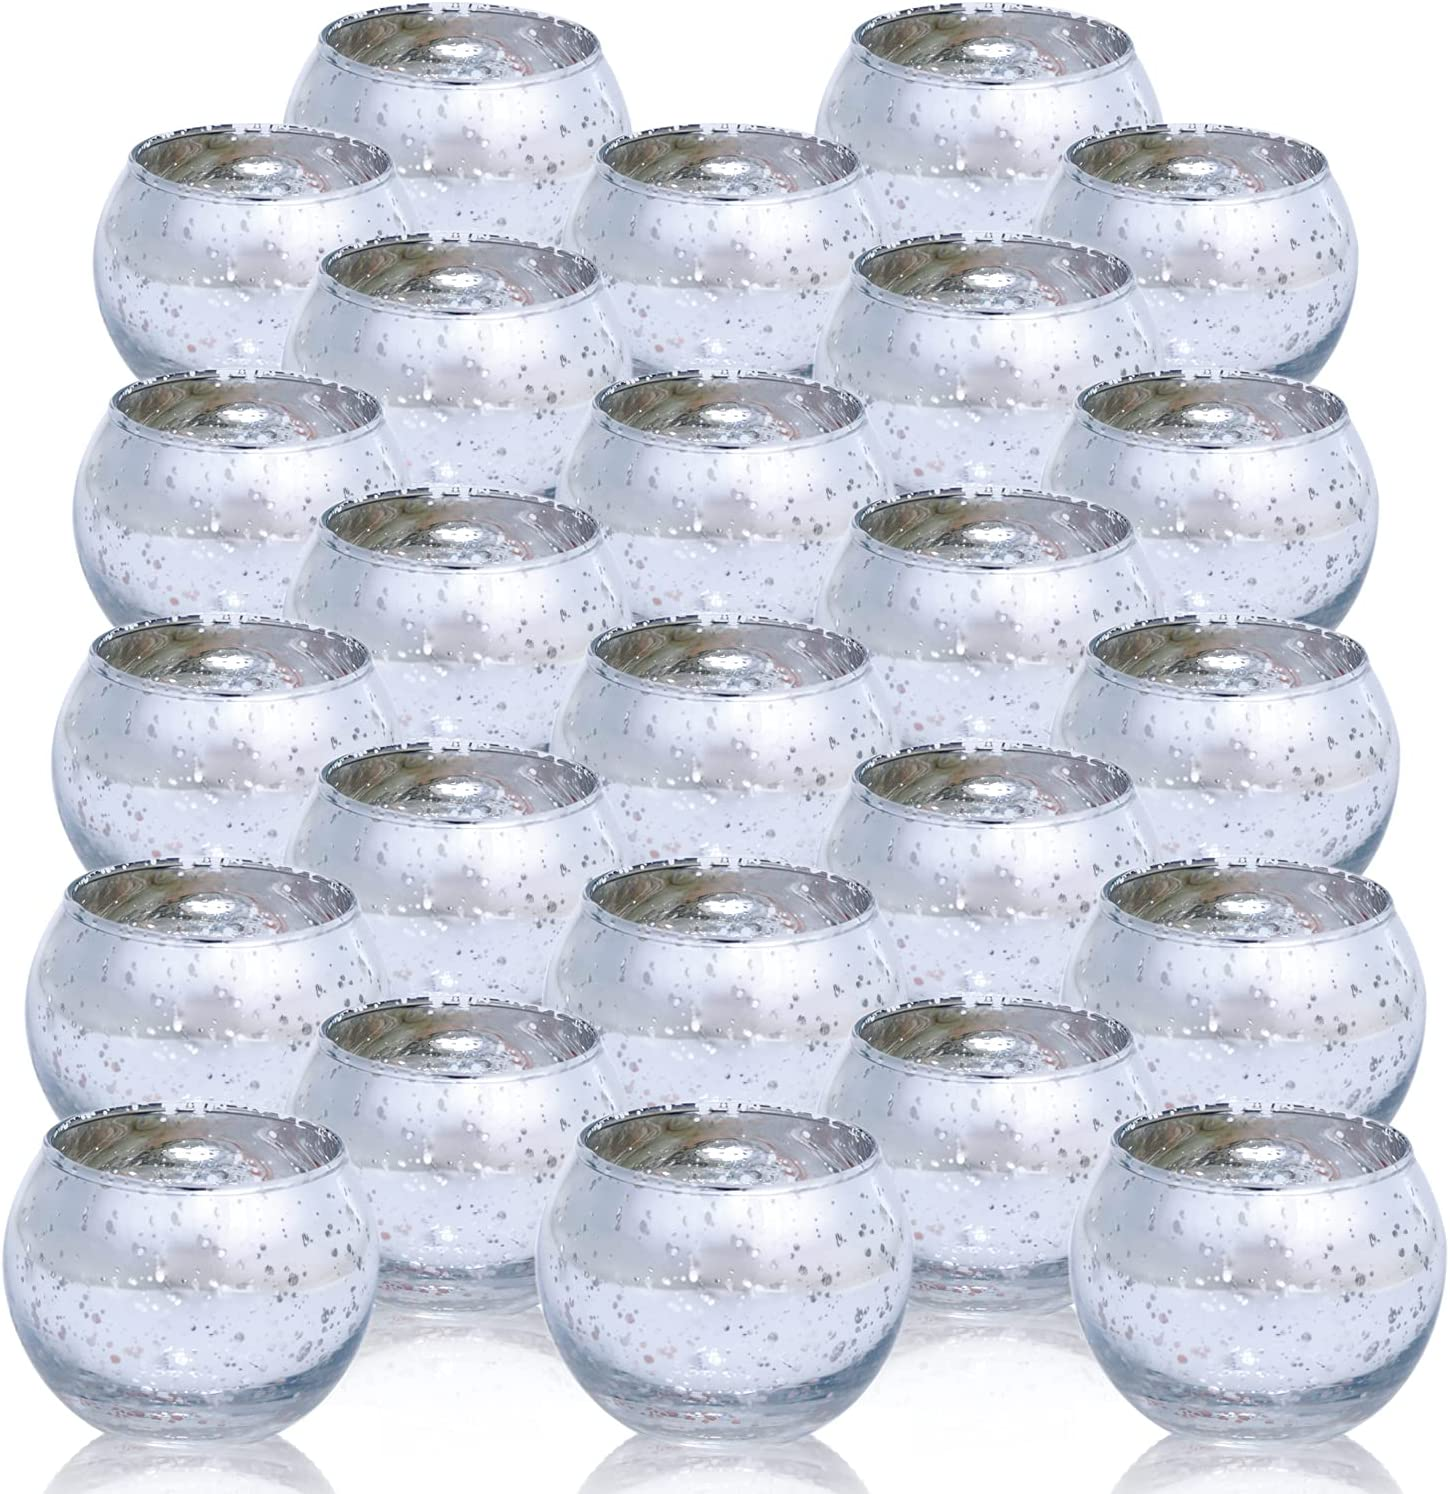 Silver Votive Candle Holder - Set of 48 Wedding Centerpieces for Table, Mercury Glass Tealight Candle Holders Bulk for Birthday  Party  Home Decoration